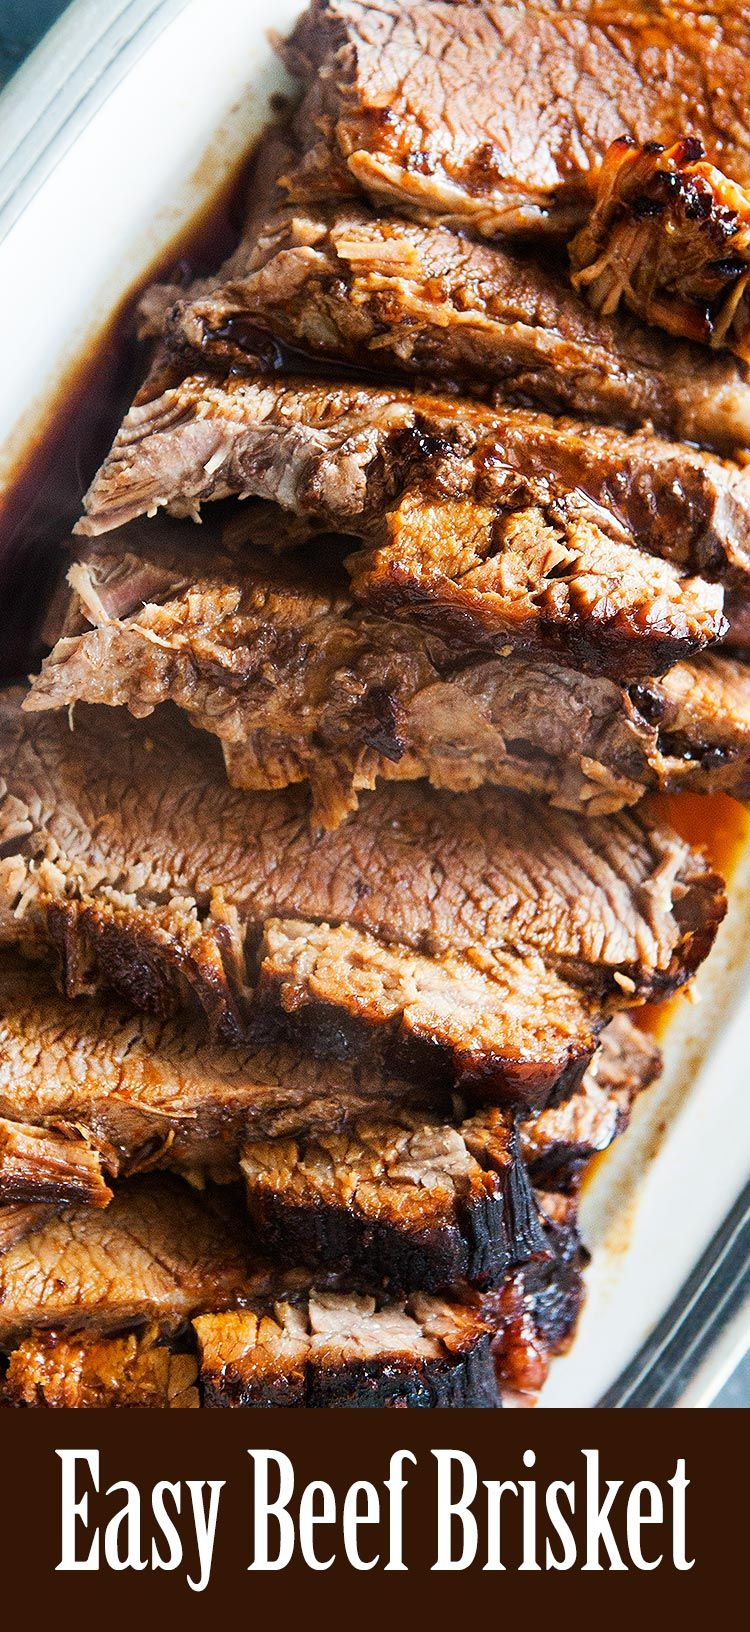 Beef Brisket Easy Oven Baked Simplyrecipes Com Recipe Beef Brisket Recipes Brisket Brisket Recipes